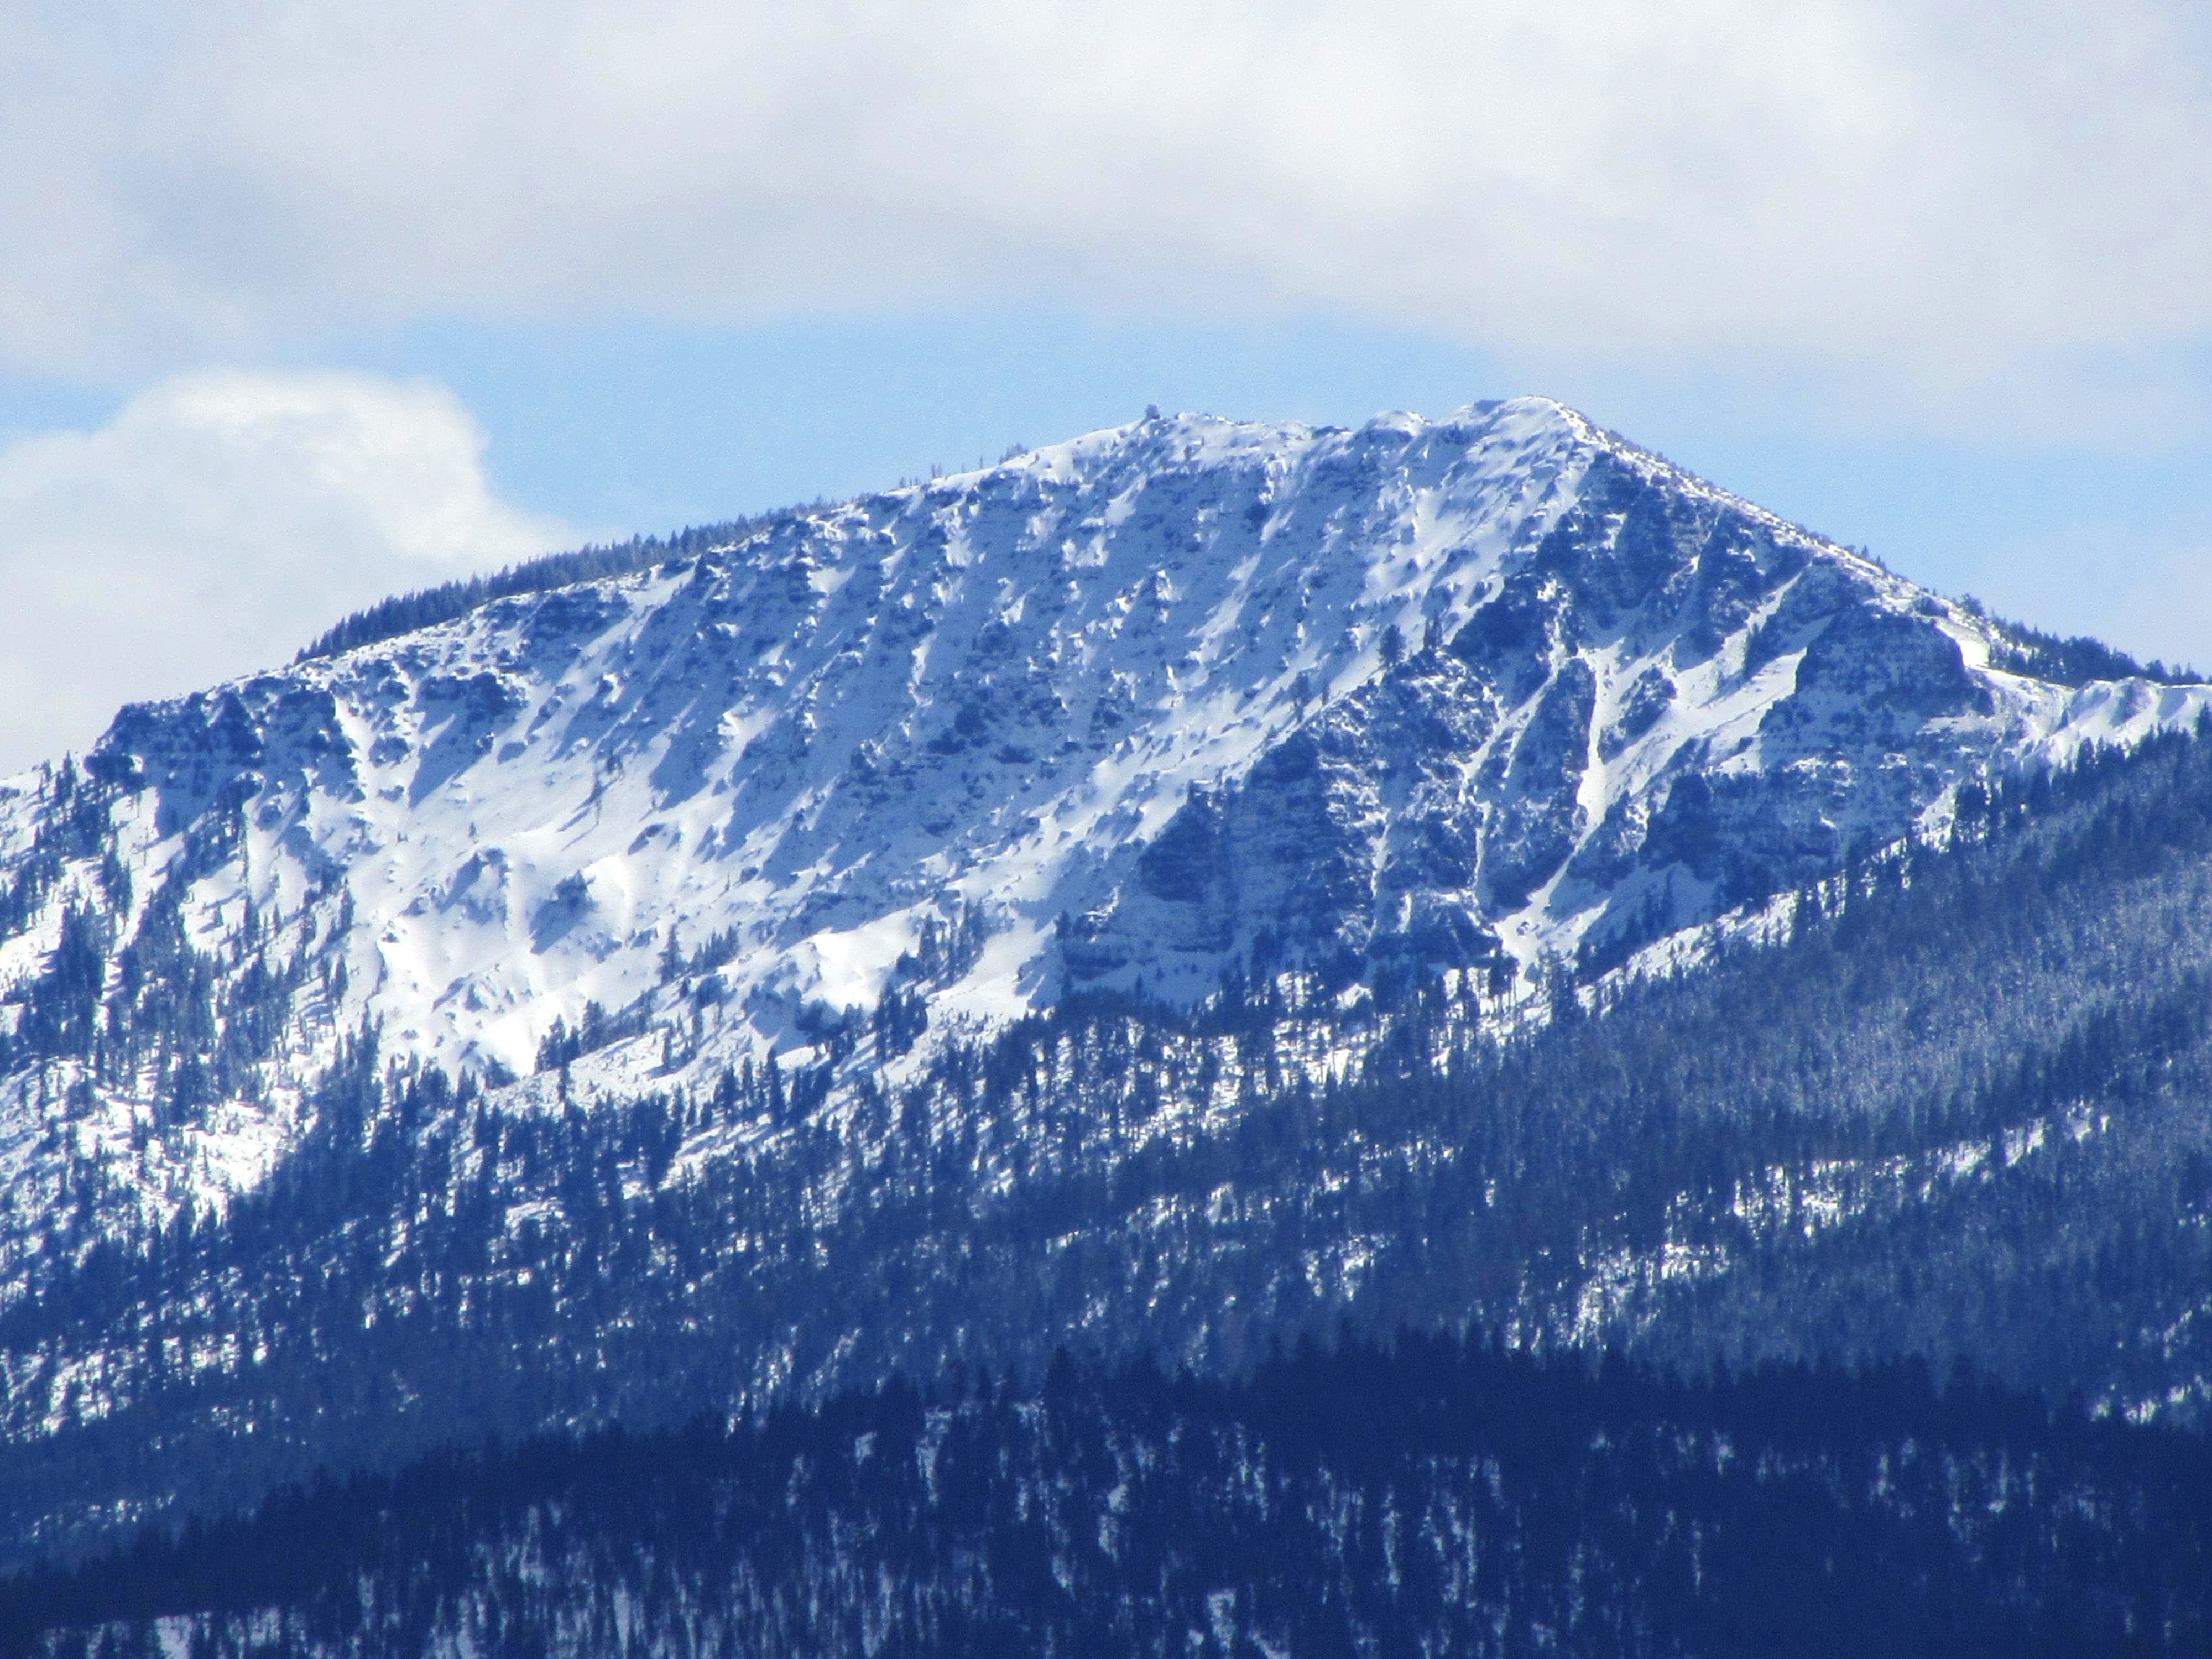 Thompson Peak (Diamond Mountains)